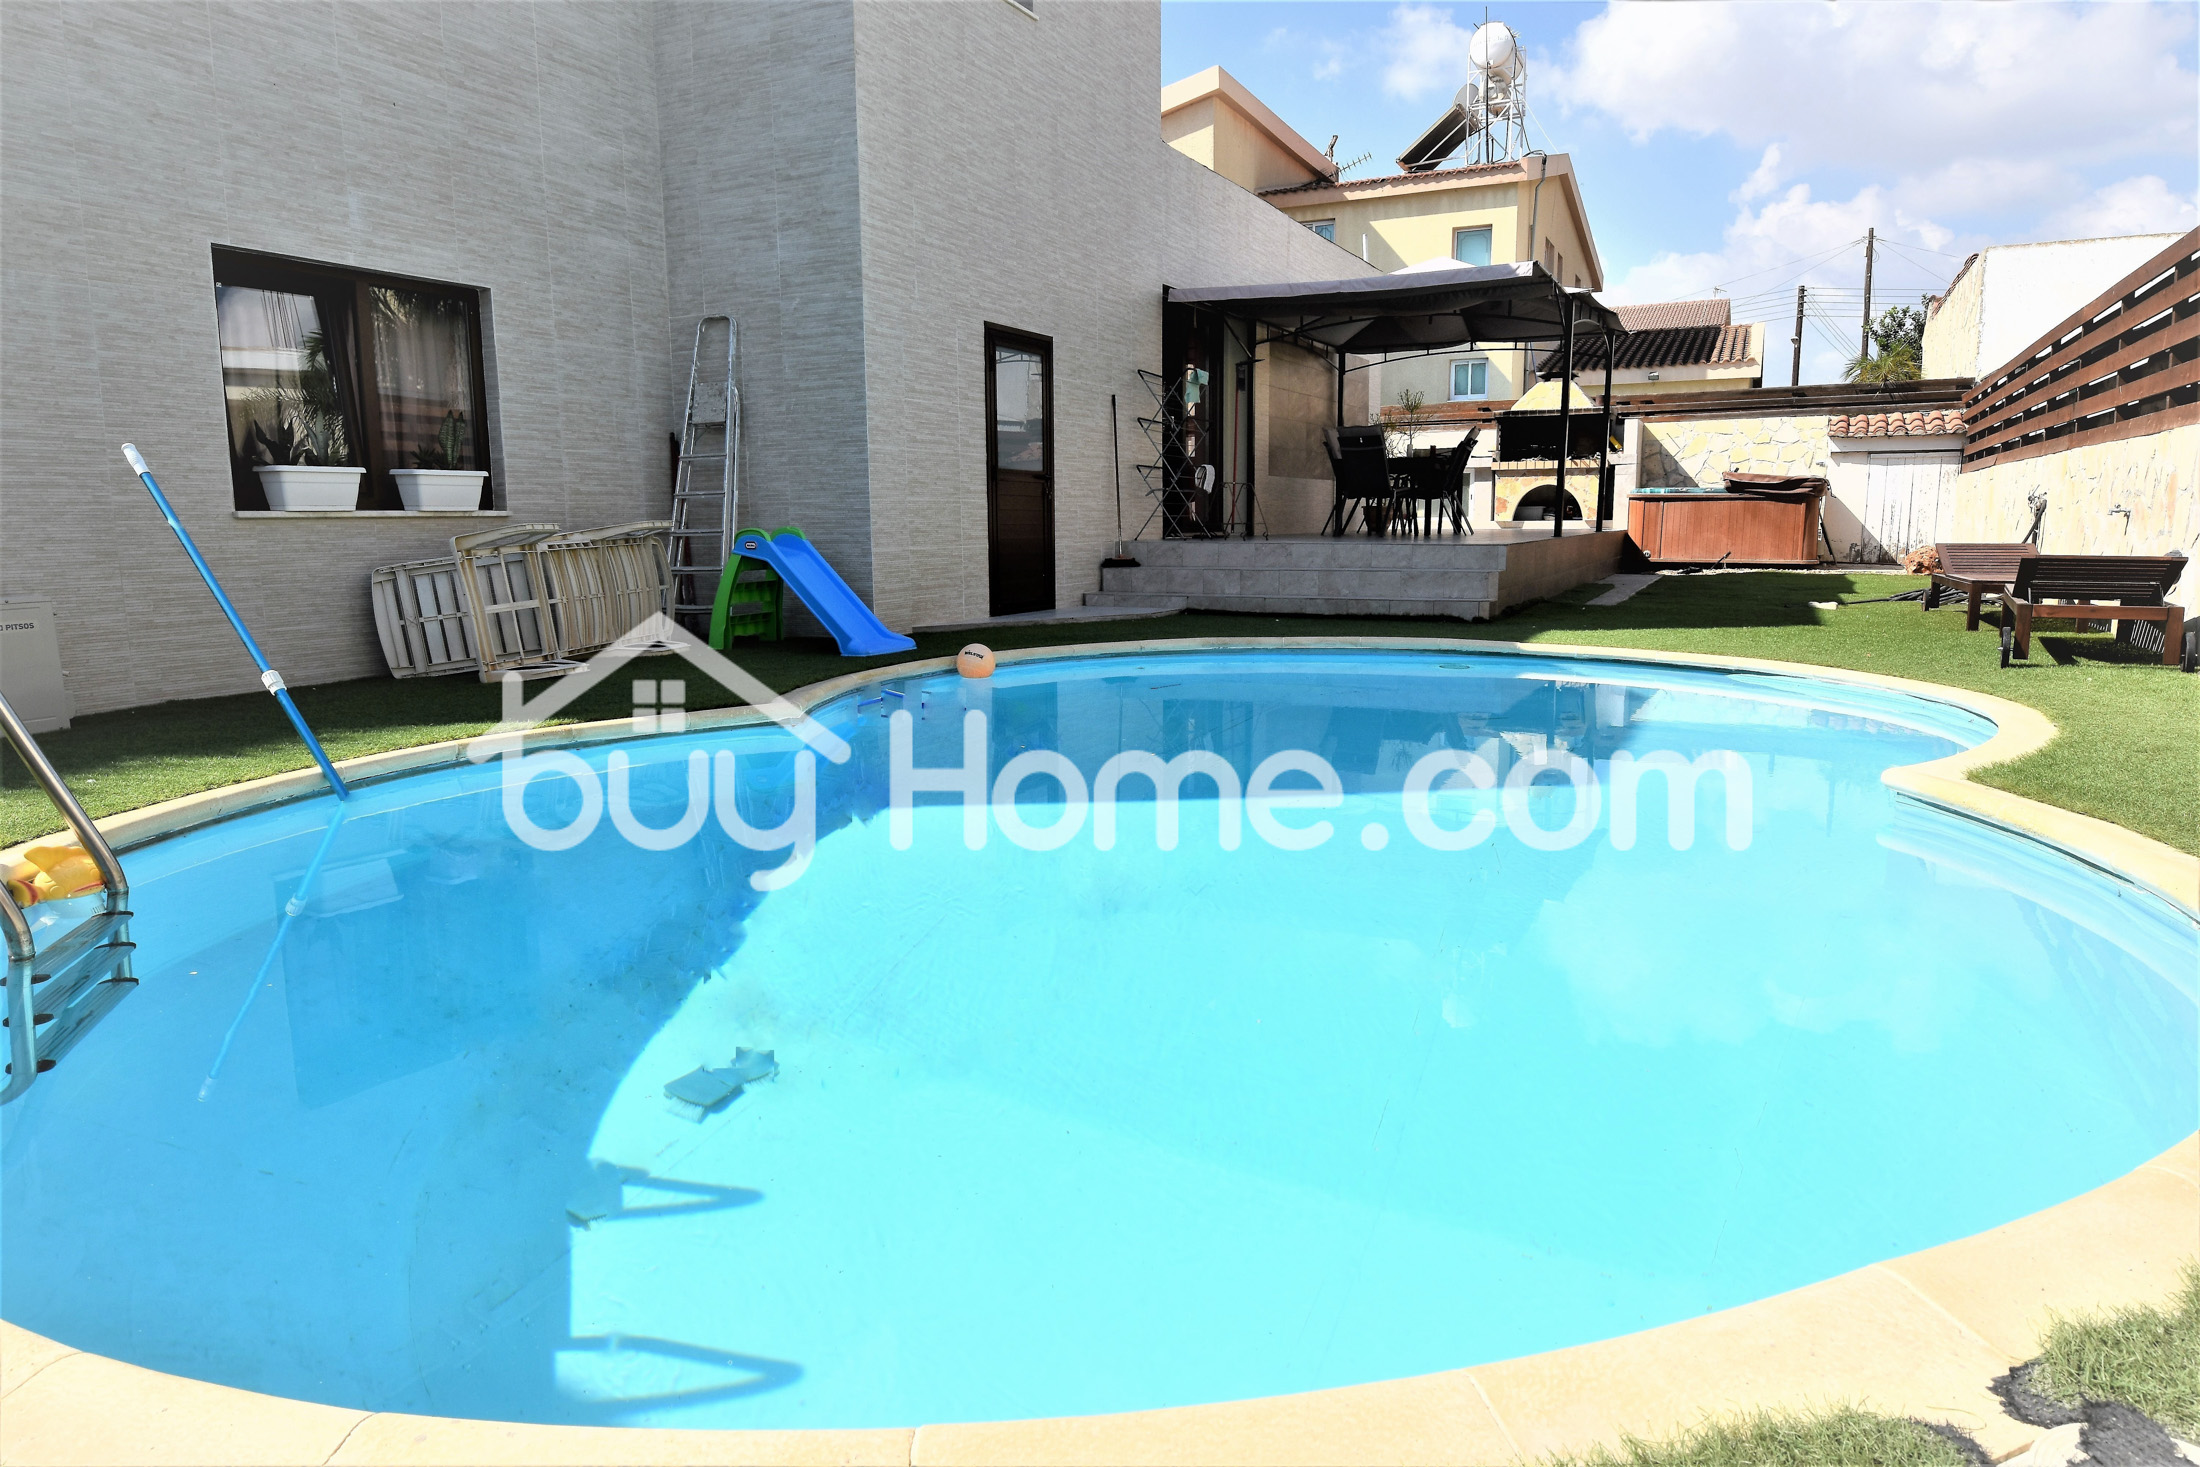 5 Bedroom House With A Pool | BuyHome